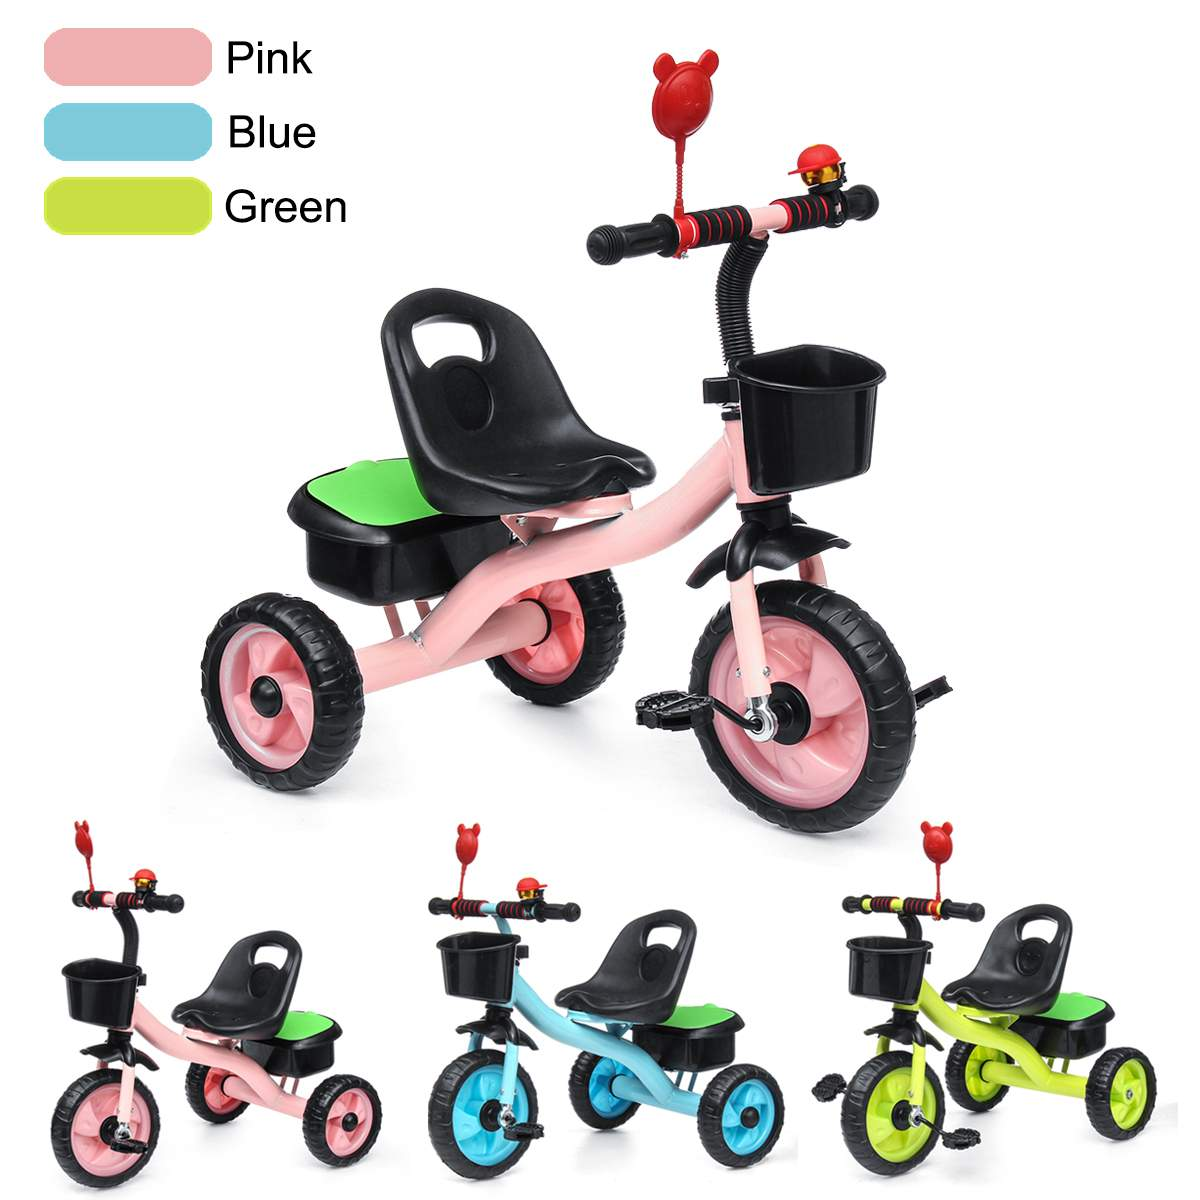 Kids Children Child Tricycle Bicycle 3 Wheel  Kindergarten Kids Ride On Bike Toddler Trike For 2-6 Years Old Kid